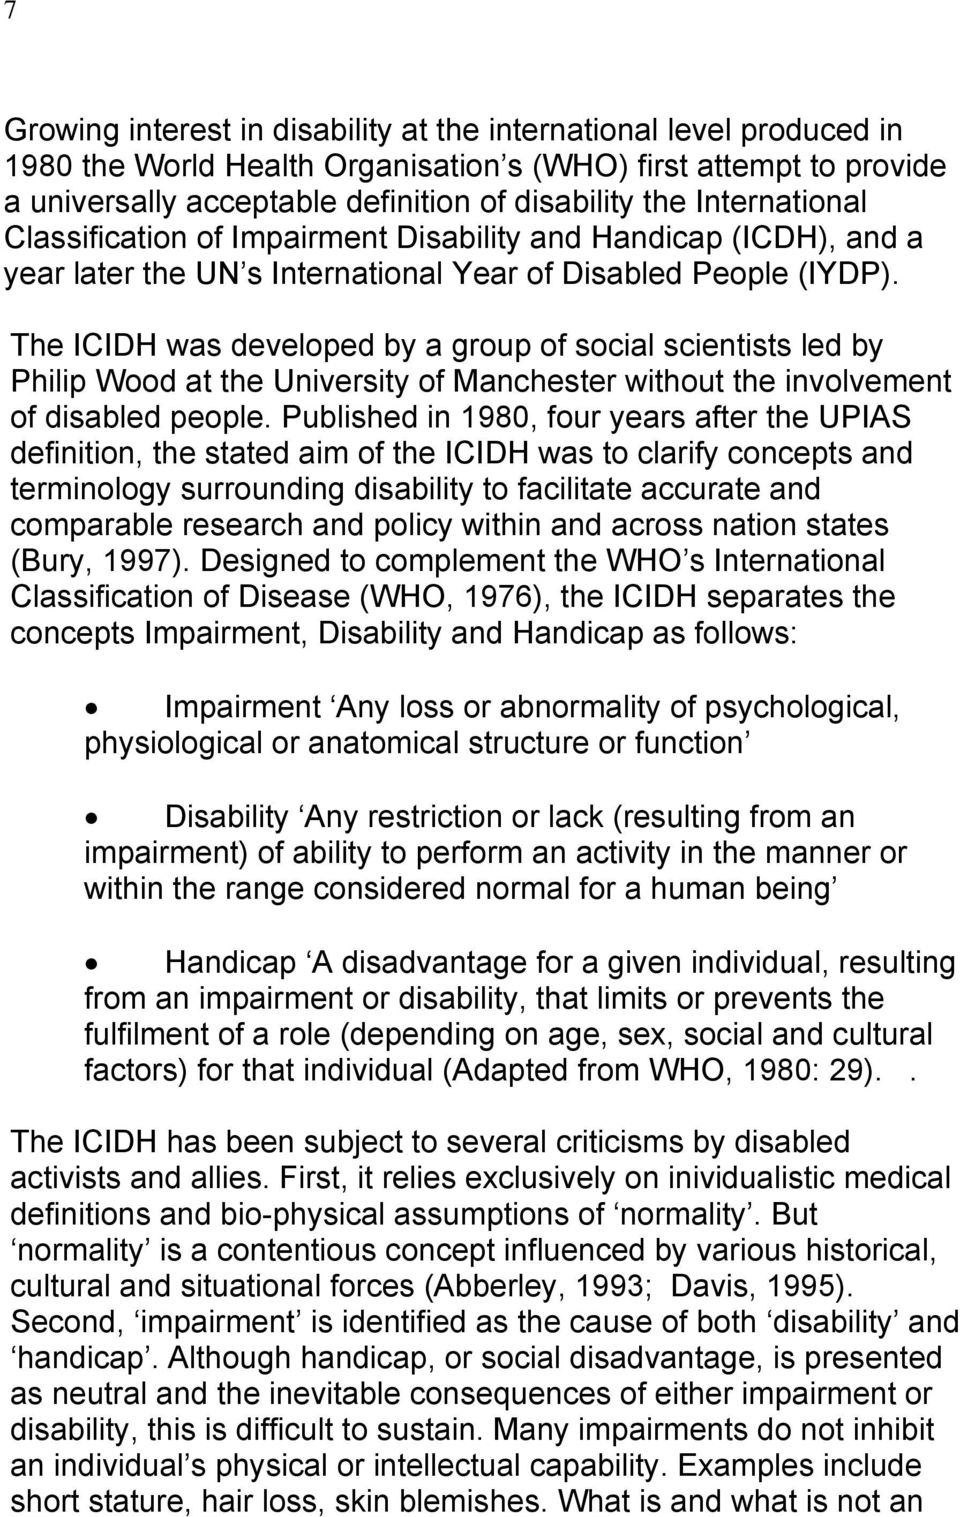 The ICIDH was developed by a group of social scientists led by Philip Wood at the University of Manchester without the involvement of disabled people.